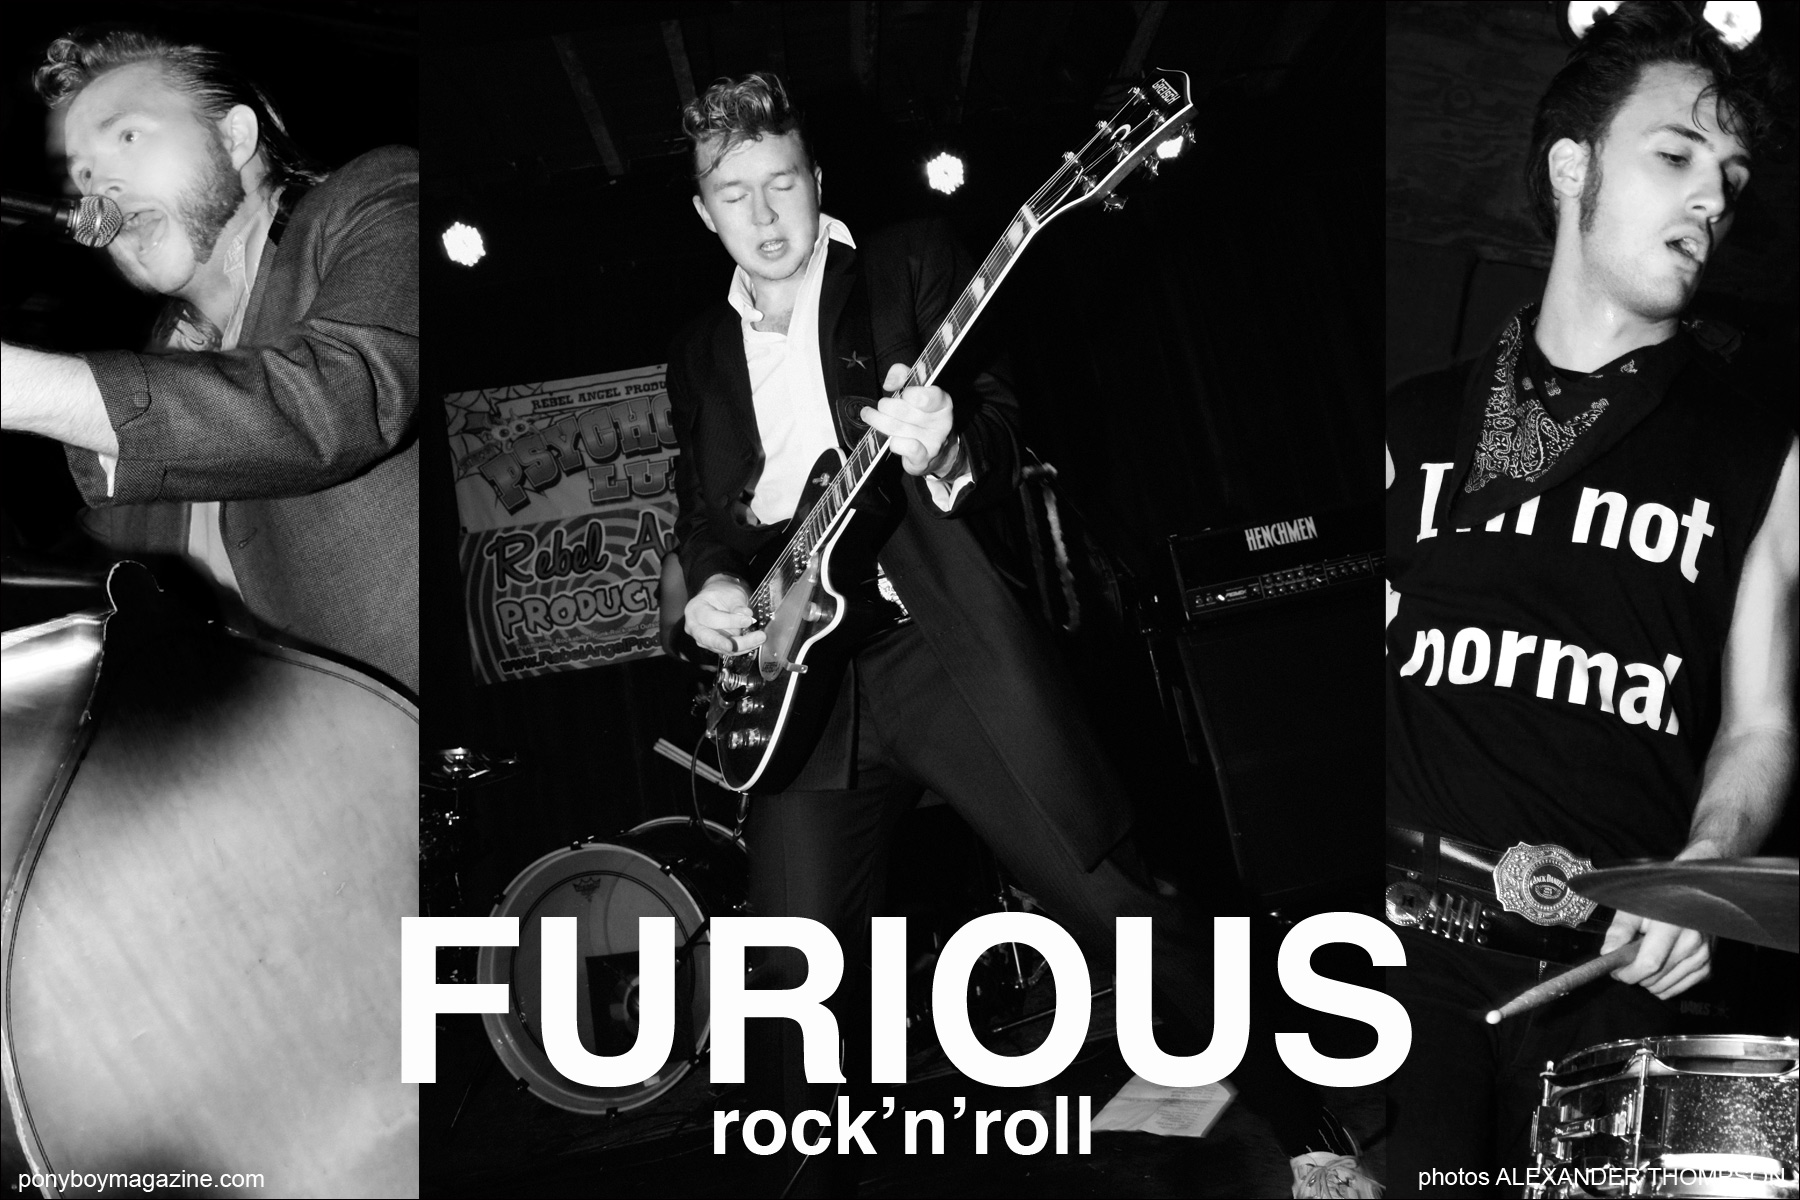 Opener for Ponyboy Magazine spread on teddy boy UK band Furious. Photographs by Alexander Thompson.